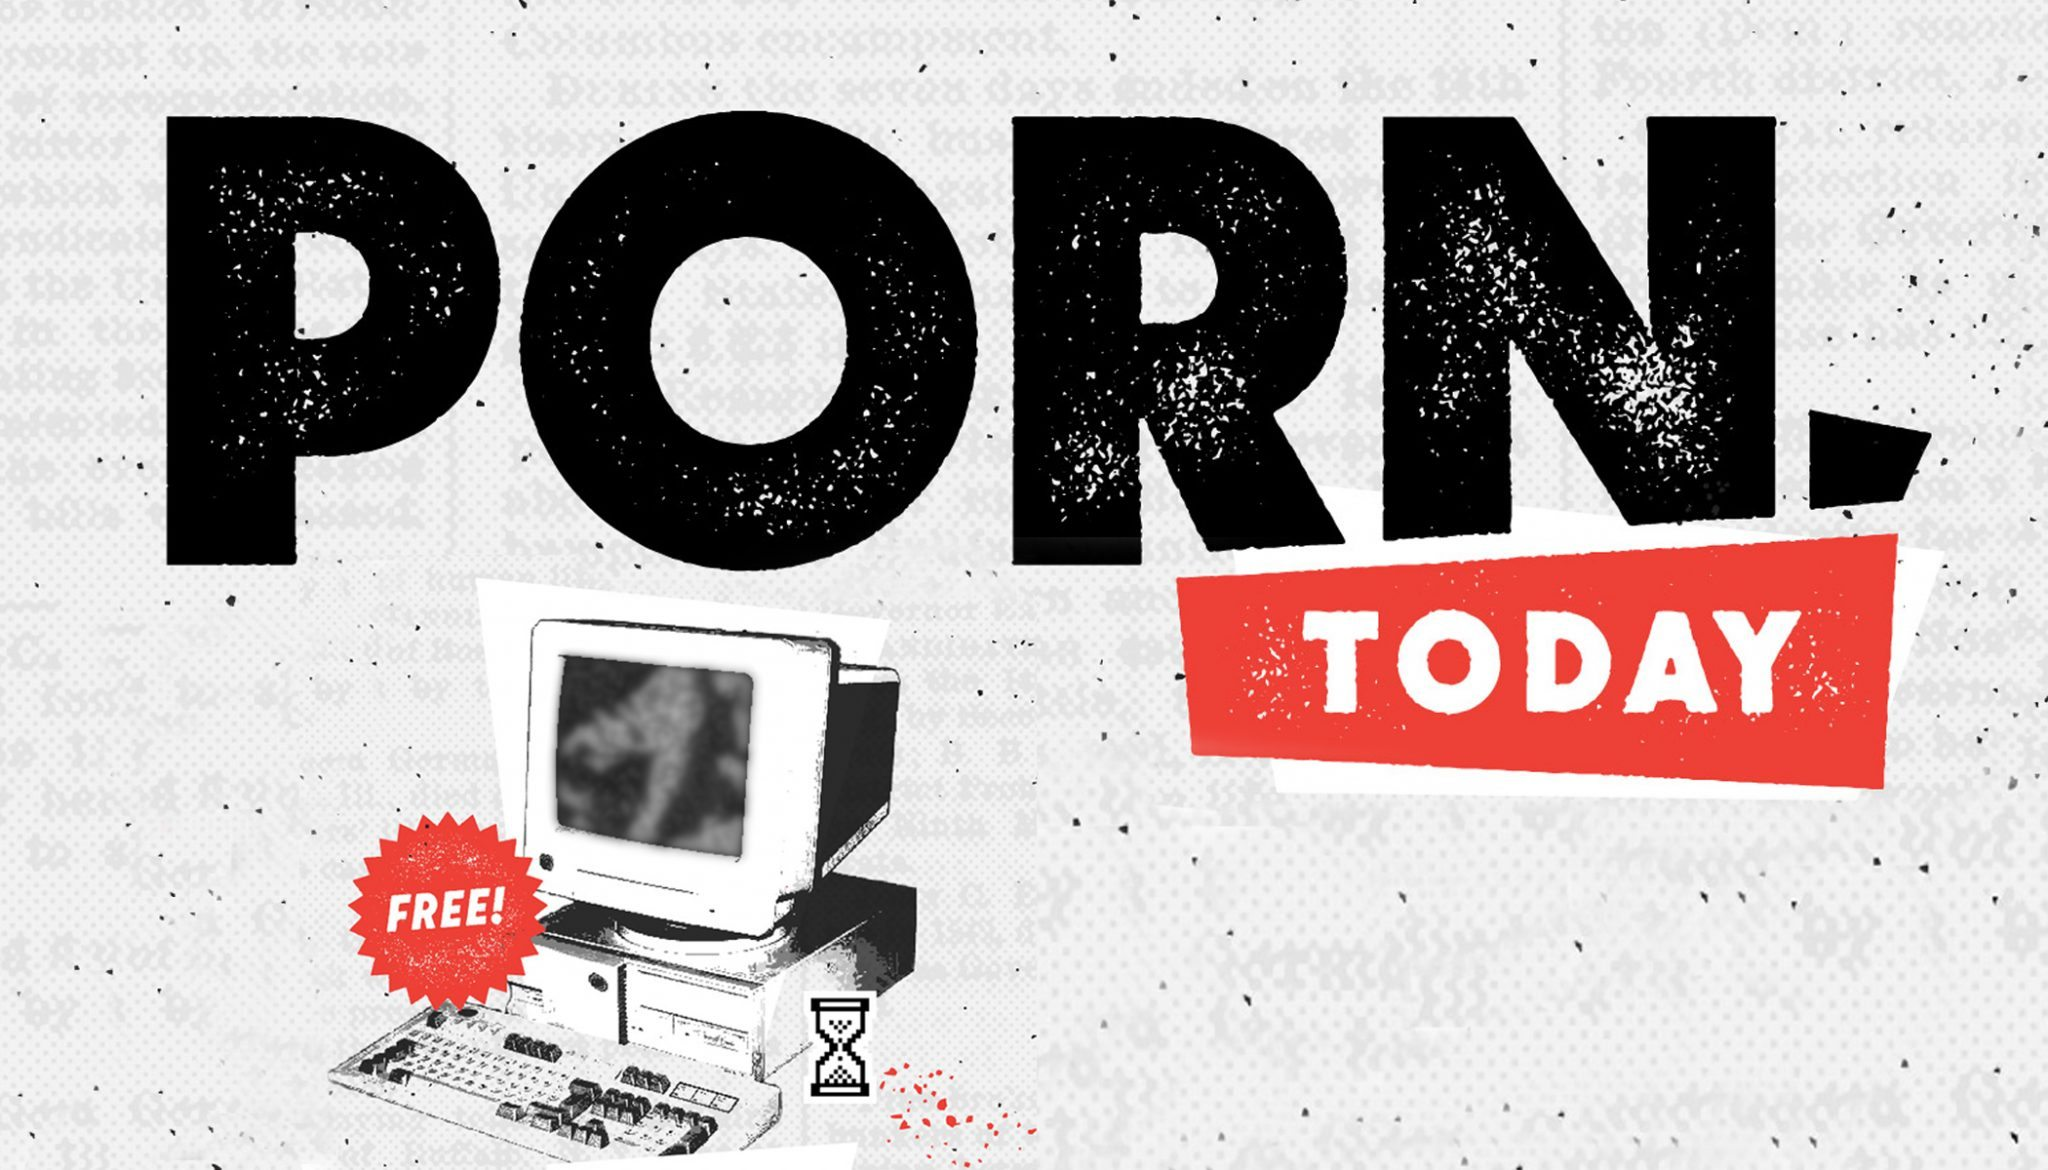 Porn Yesterday vs. Porn Today (Infographic)